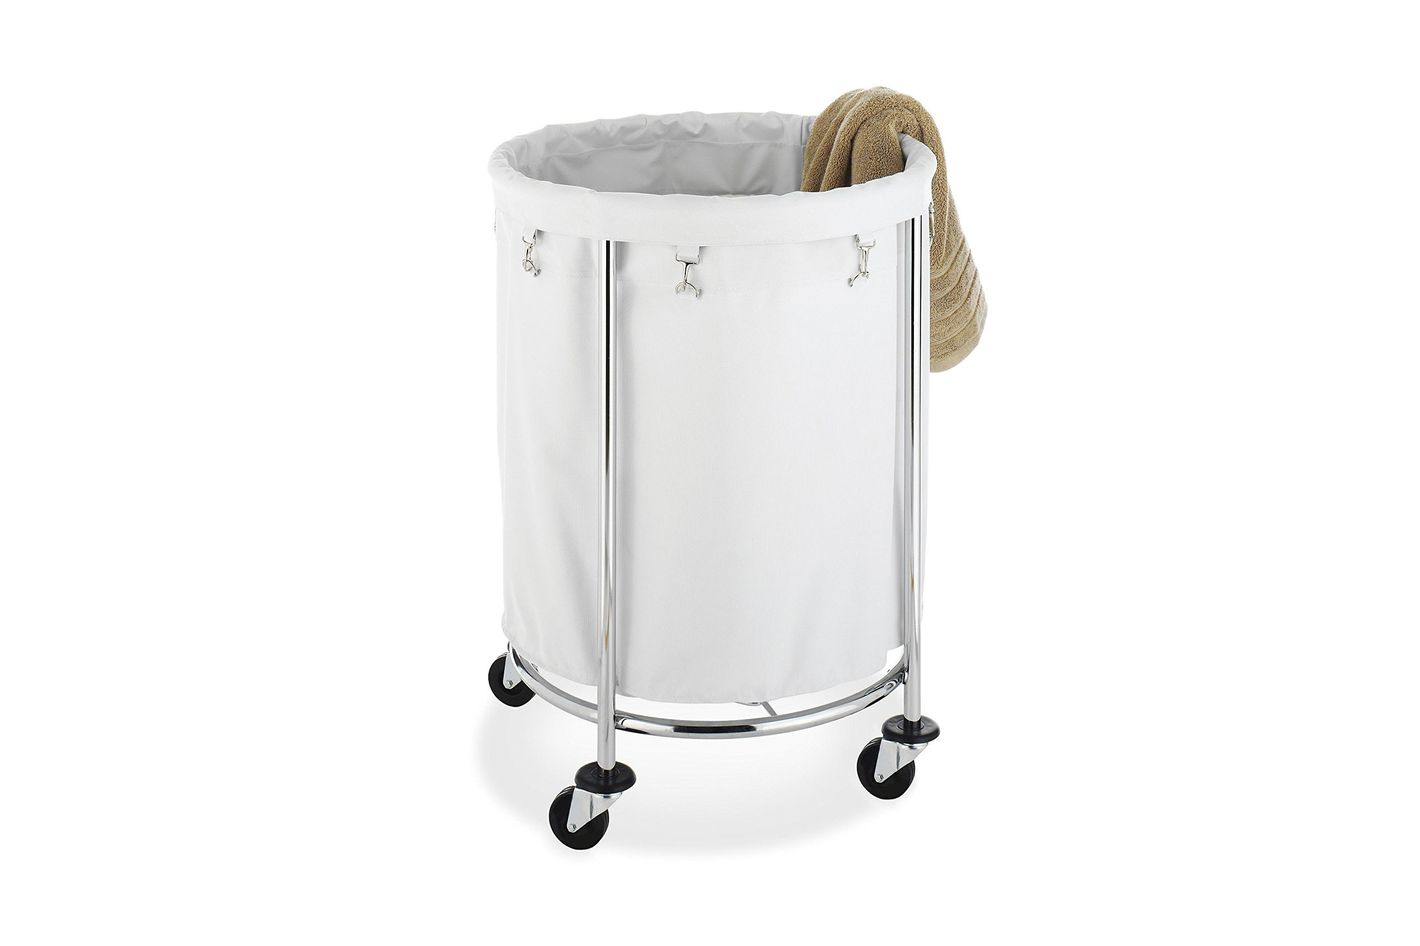 Laundry Basket With Wheels And Handle Interior Design Ideas